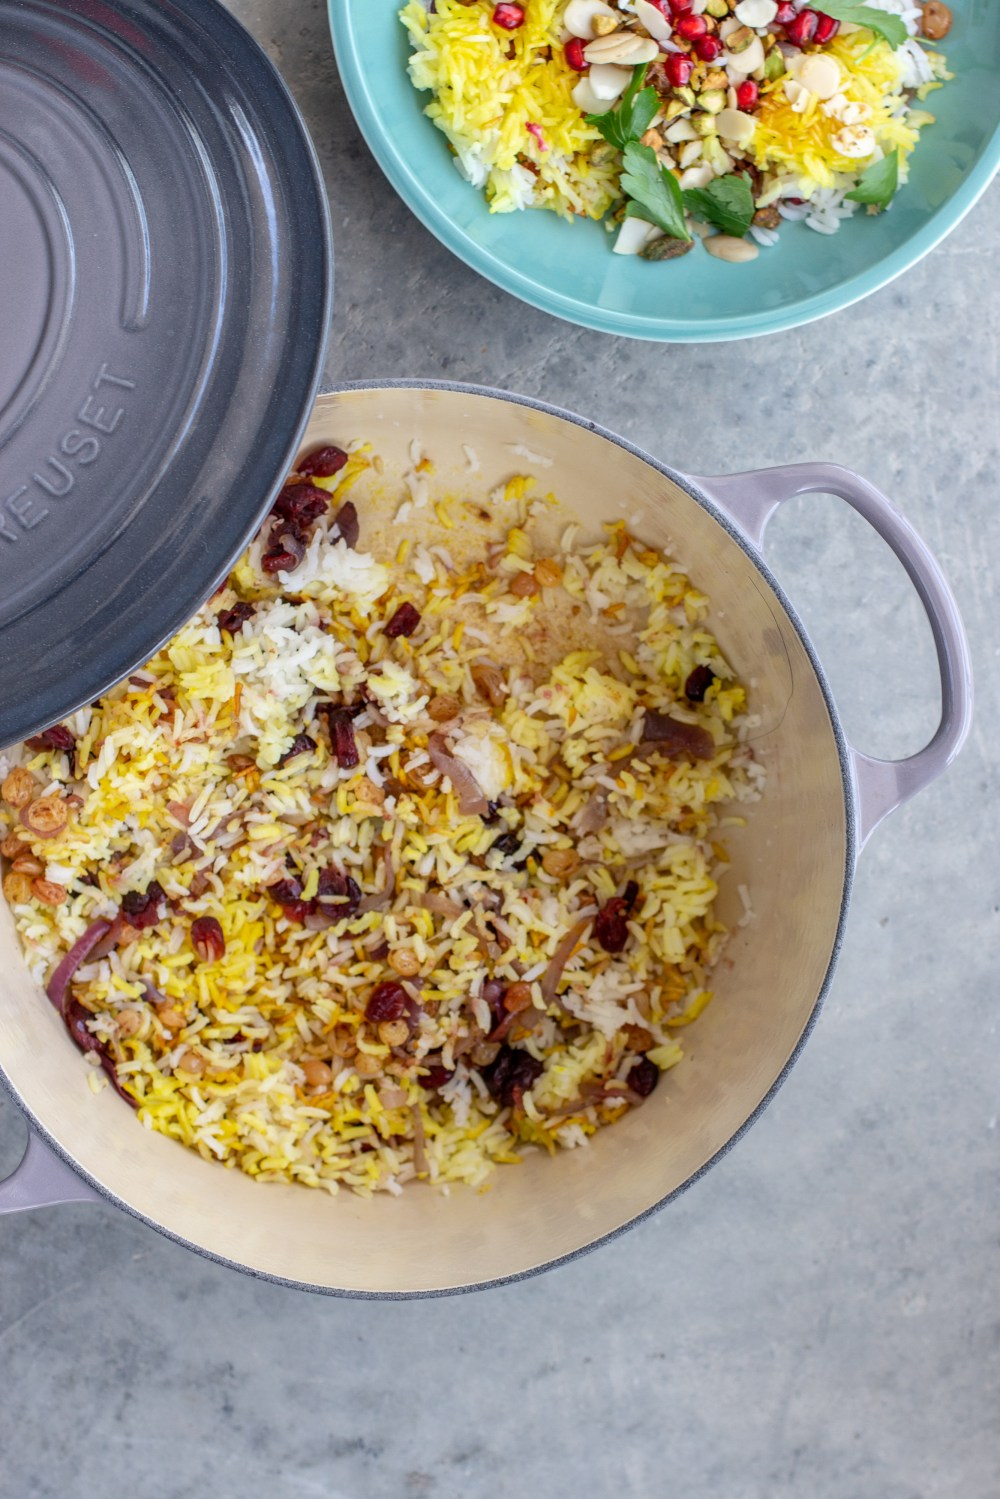 Jewelled Saffron Rice made in Oyster Le Creuset French Oven